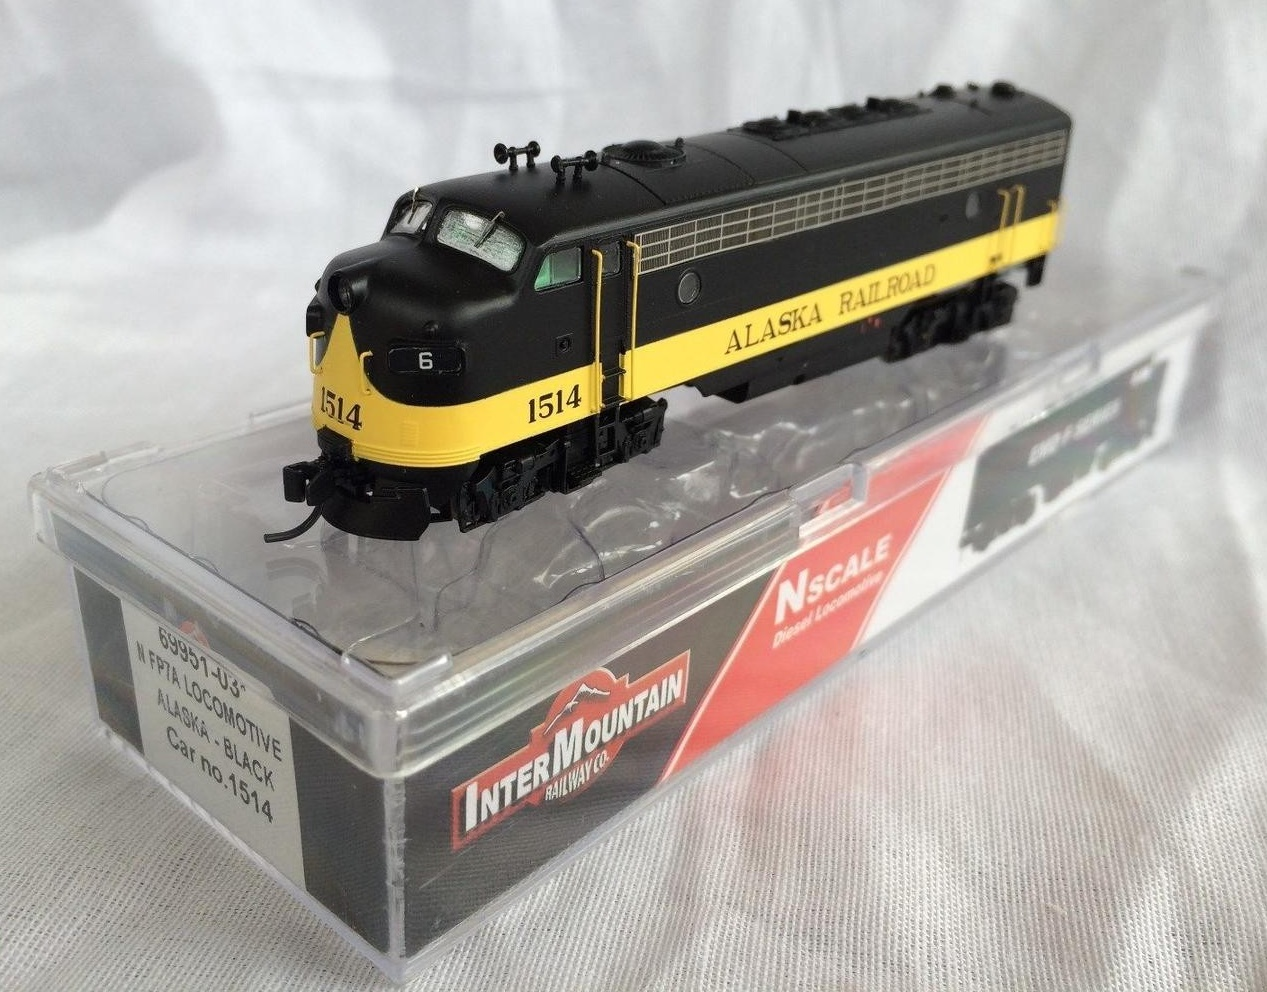 N Scale - InterMountain - 69951-03 - Locomotive, Diesel, EMD FP7 - Alaska Railroad - 1514